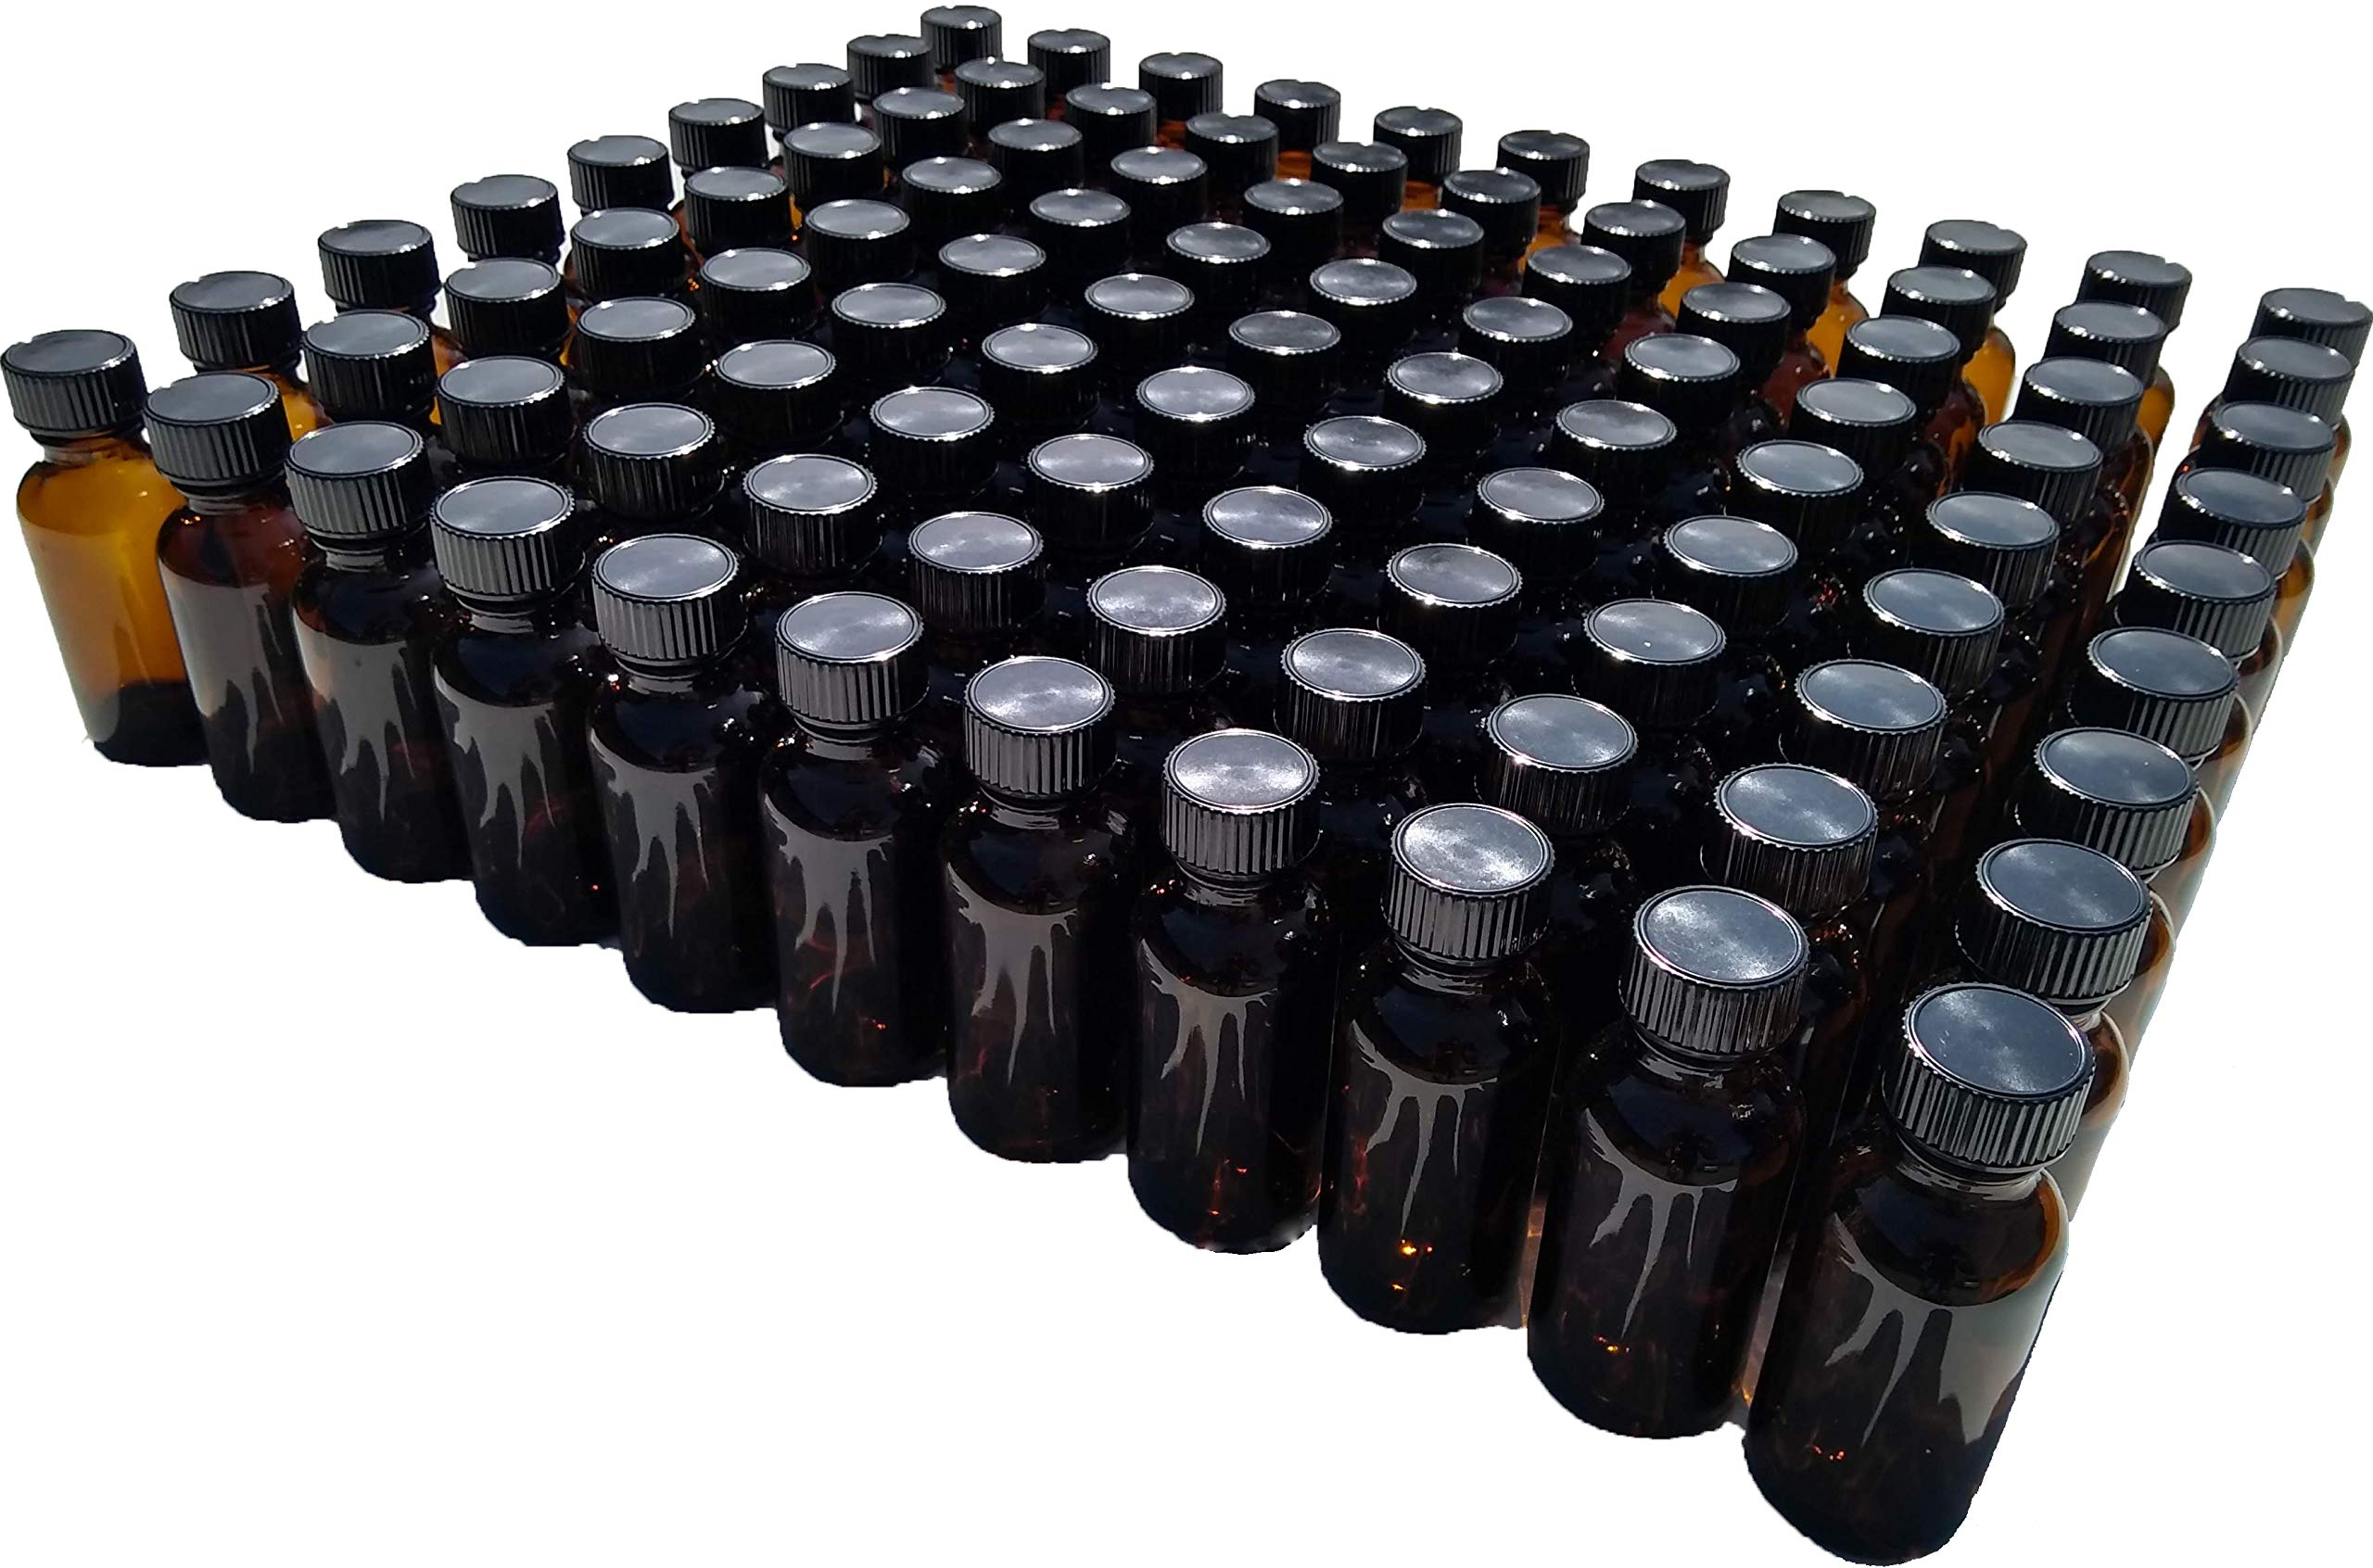 Dropper Stop 1oz Amber Glass Boston Round Bottles (30mL) with Polycone Caps - Pack of 99